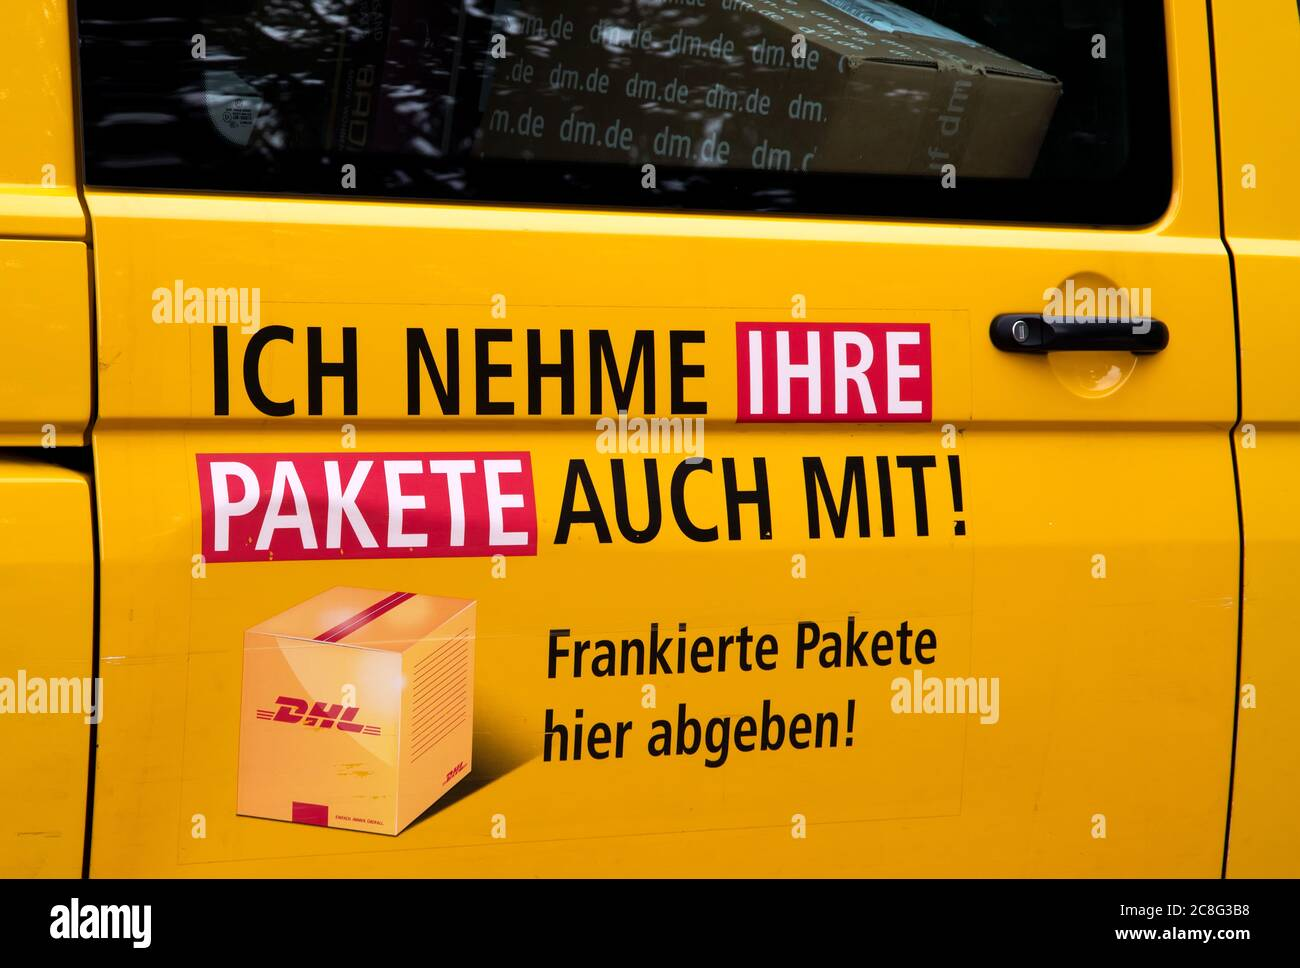 Door of a DHL transporter with the indication that parcels are being taken along. (Ich nehme auch ihre Pakete mit) Stock Photo